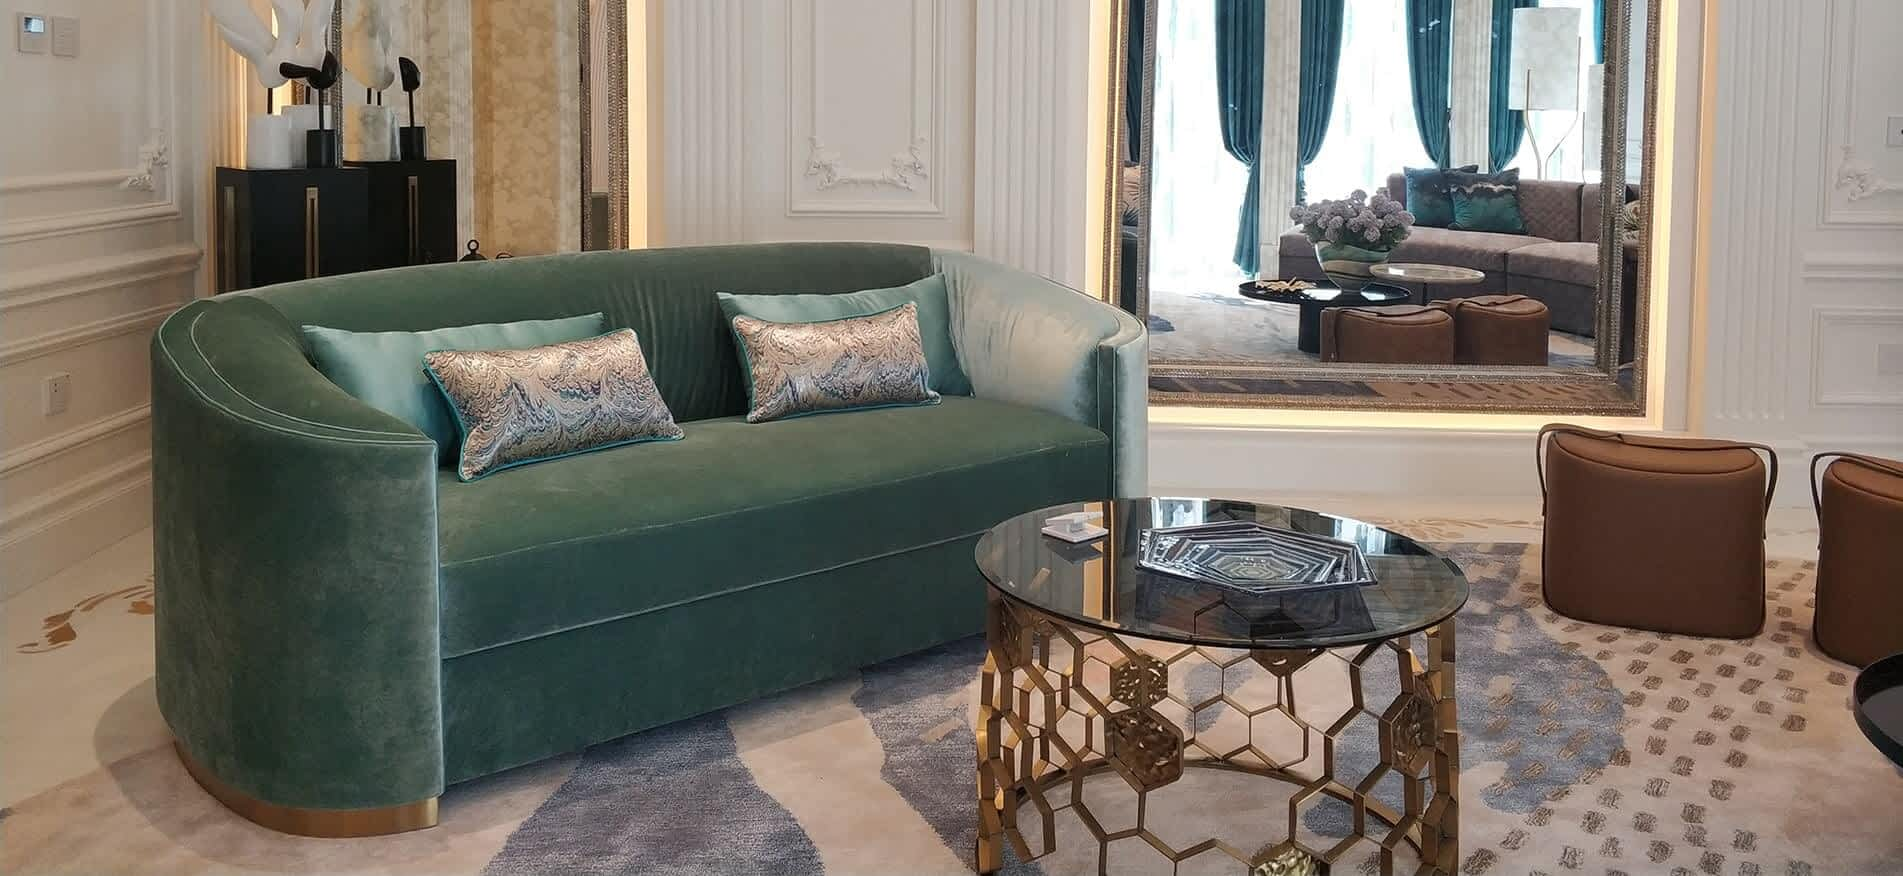 High End Hotel Apartments 2019